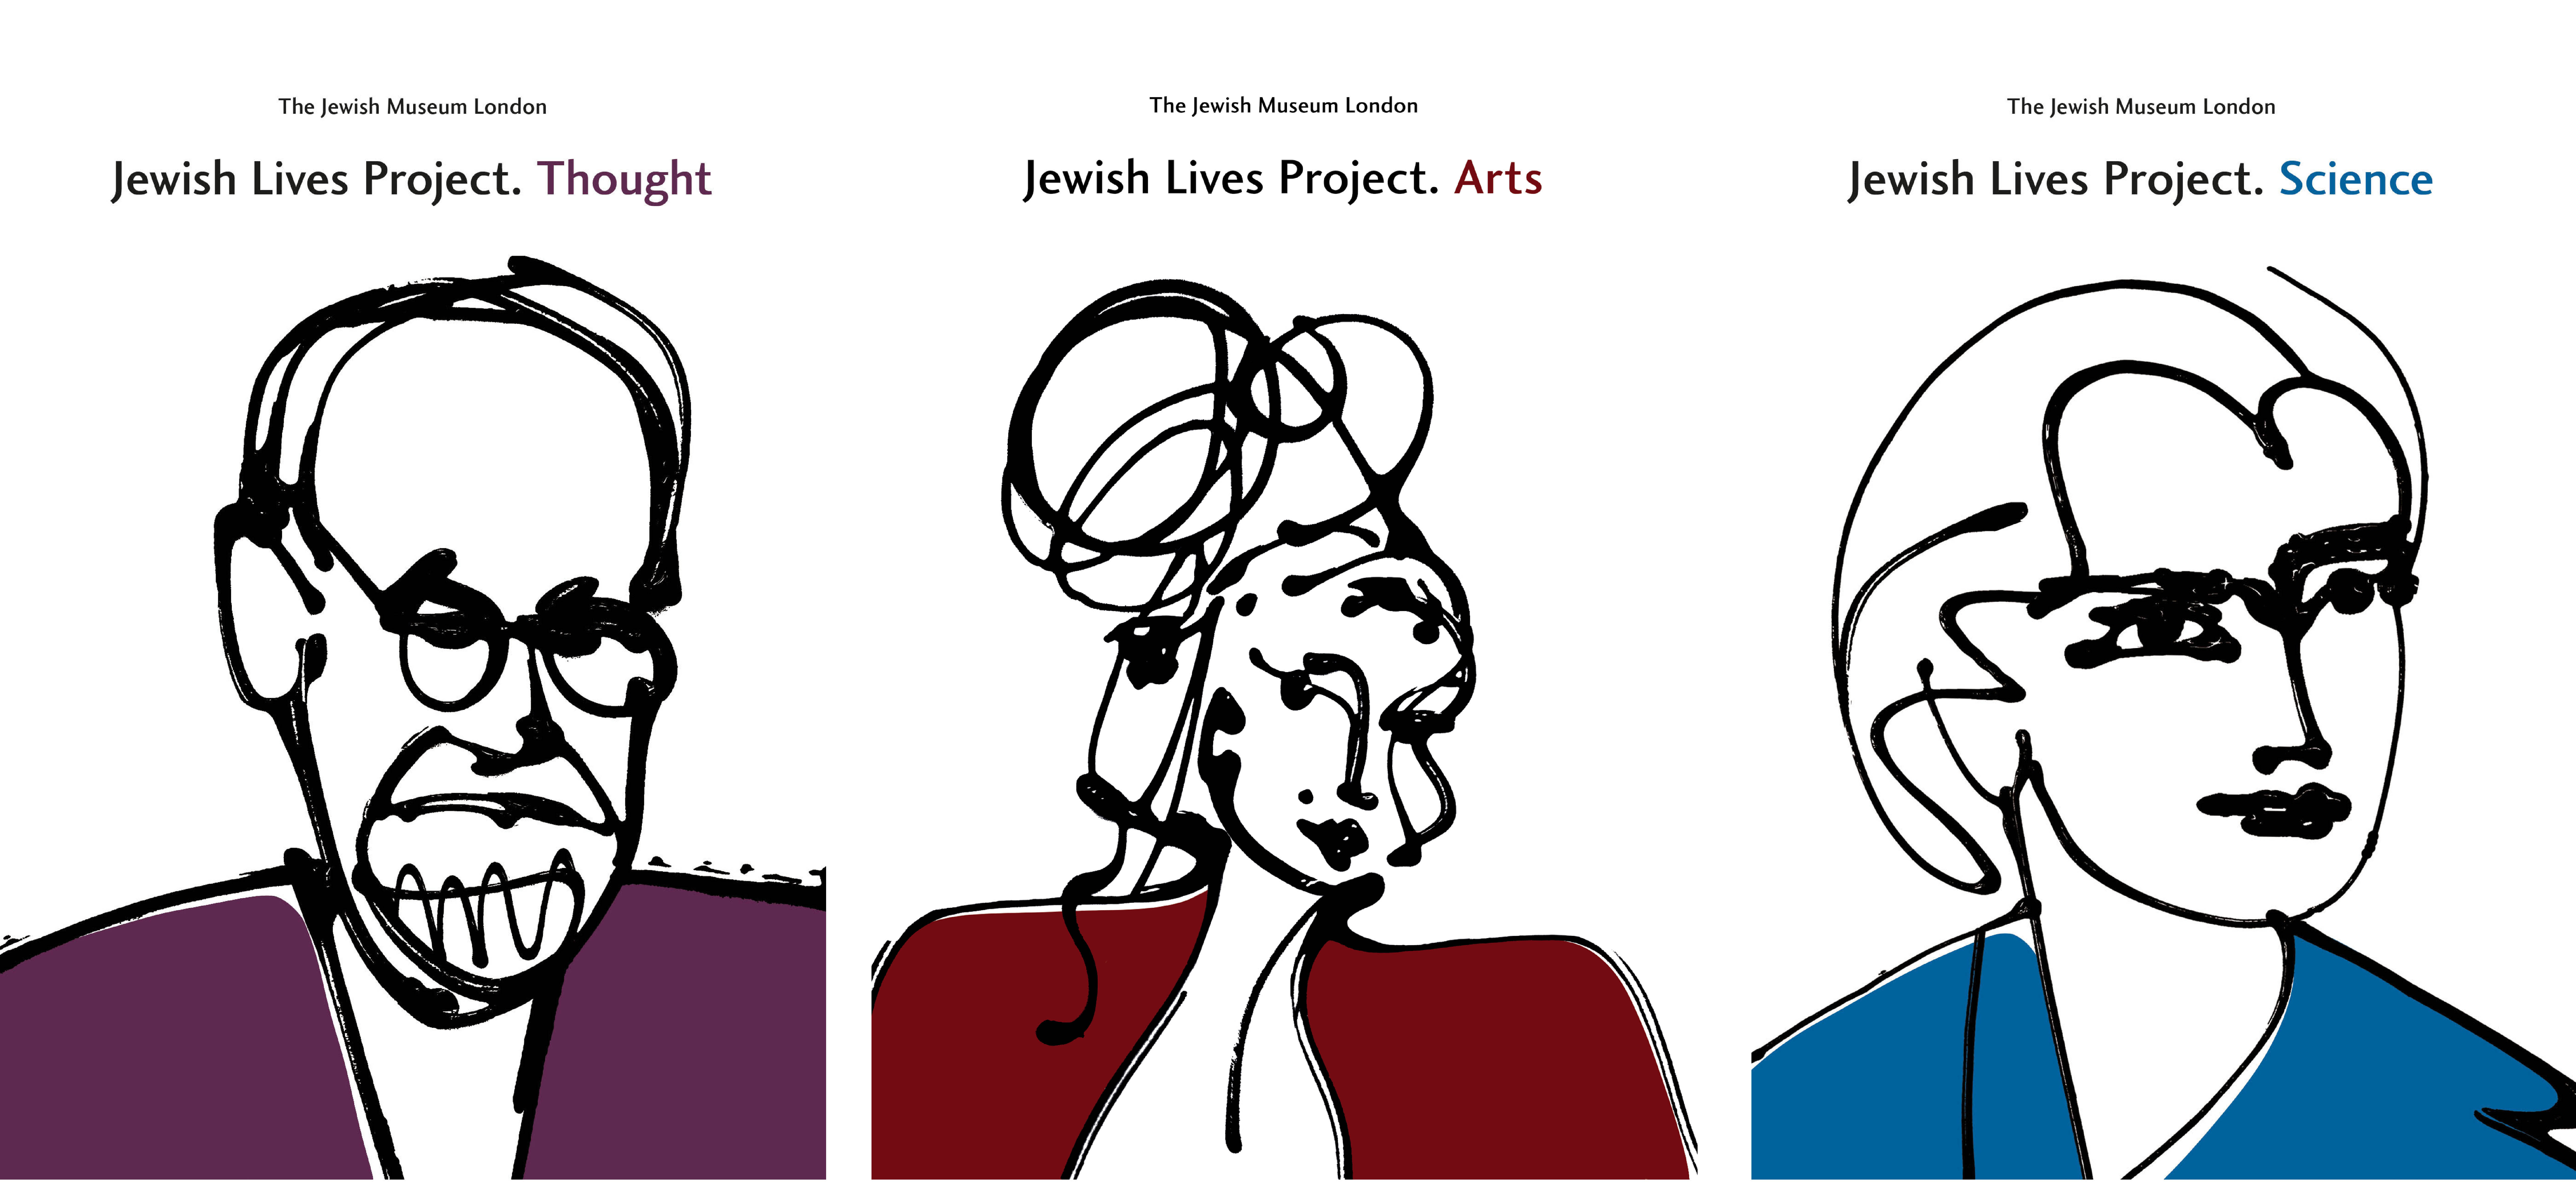 Illustrations of Freud, Amy Winehouse and unknown man with wording saying Jewish Lives Project Science, Thought and Art